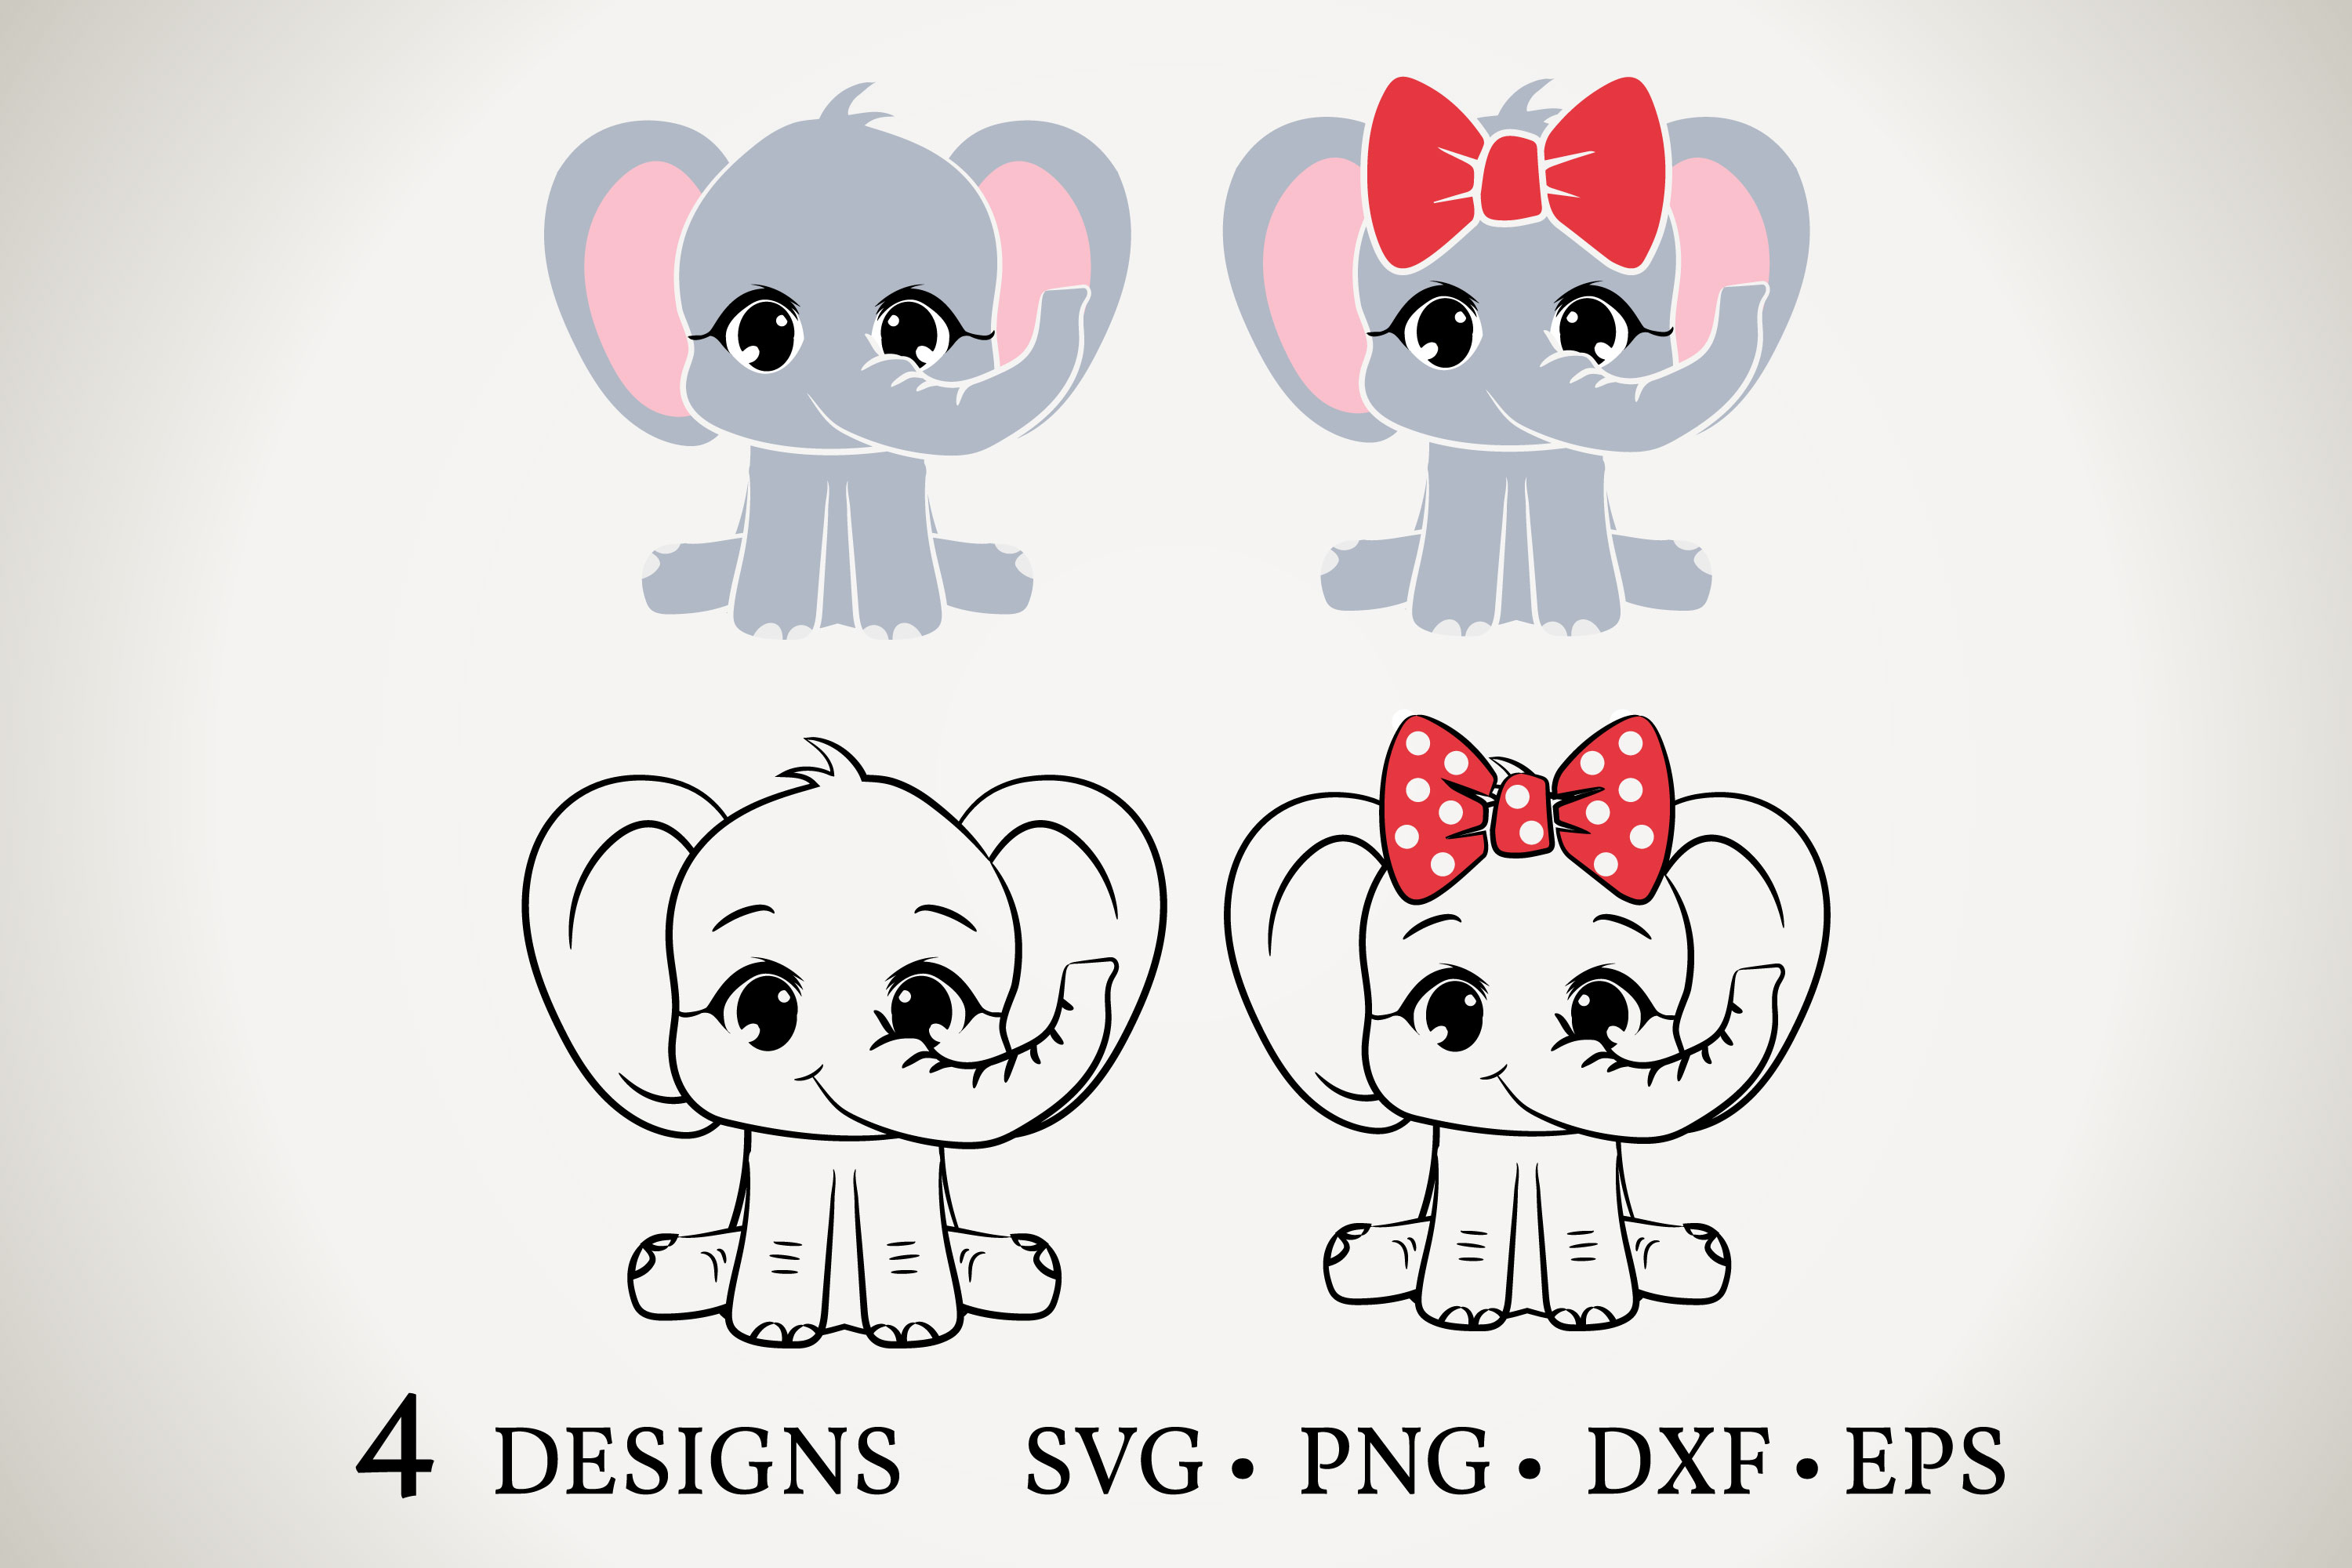 Download Free Elephant Bundle Graphic By Euphoria Design Creative Fabrica for Cricut Explore, Silhouette and other cutting machines.